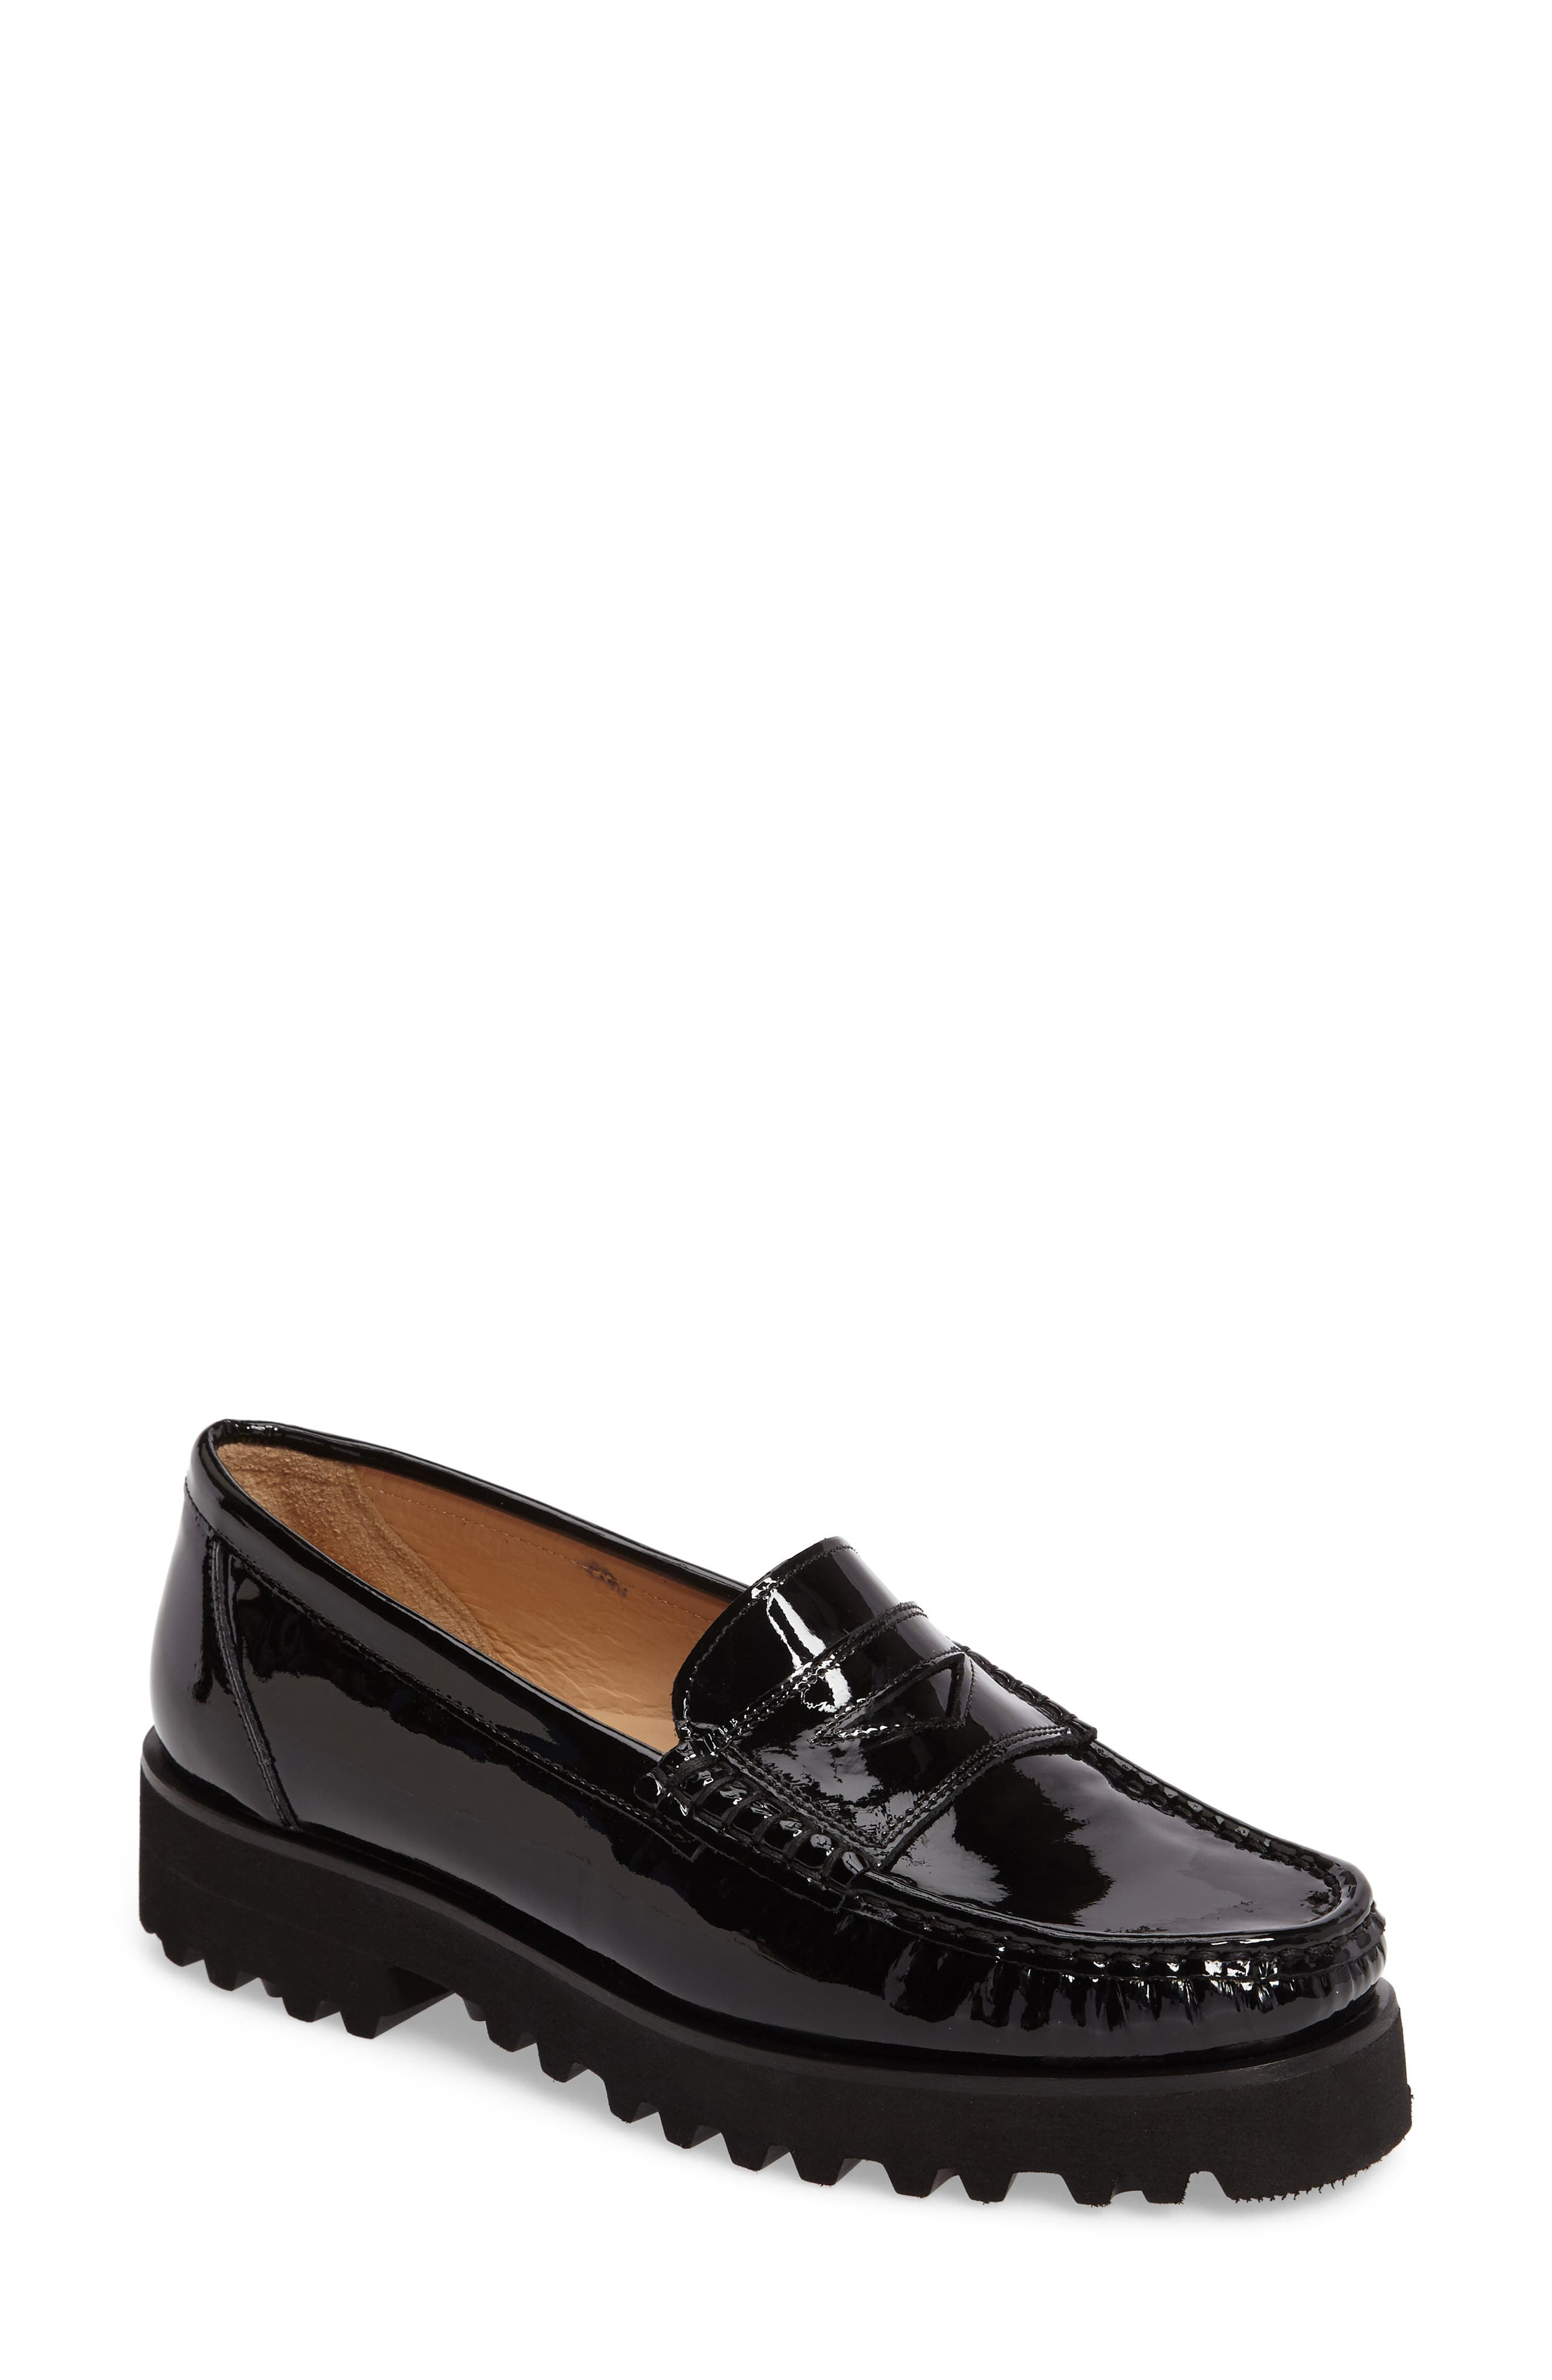 Rita Platform Penny Loafer,                             Main thumbnail 1, color,                             Onyx Patent